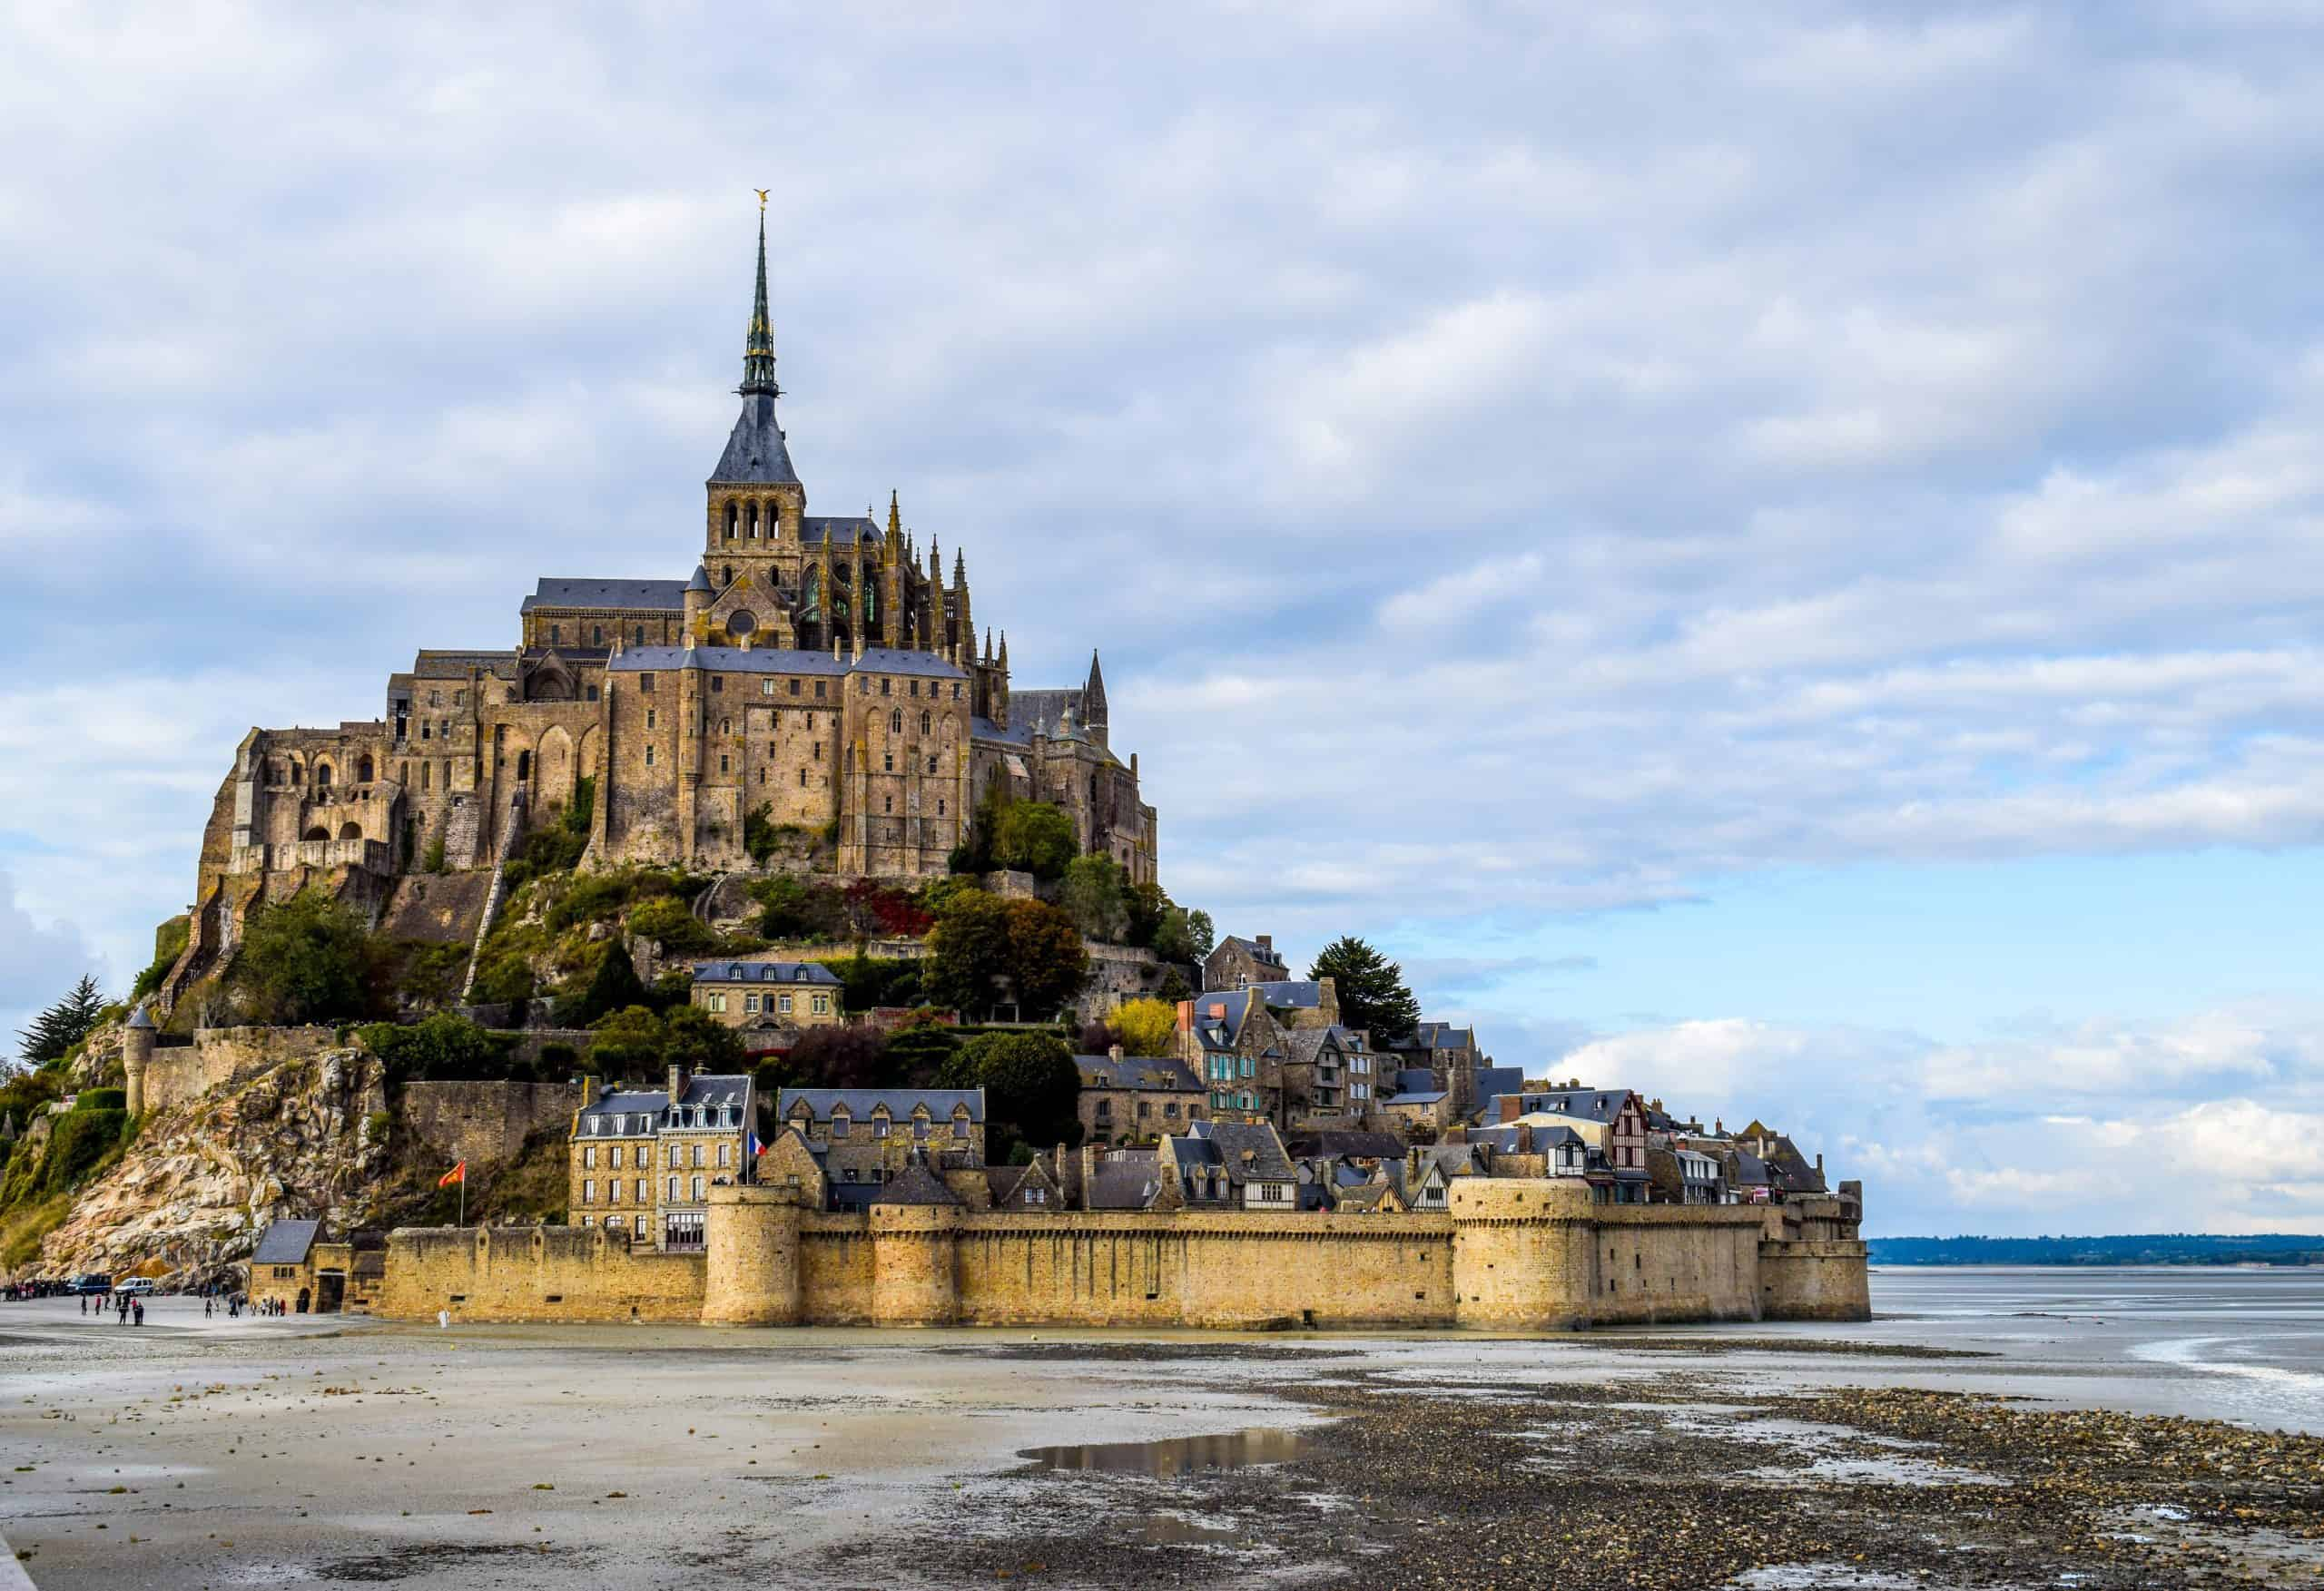 The Mont-Saint-Michel Abbey, one of the top France pilgrimage sites.